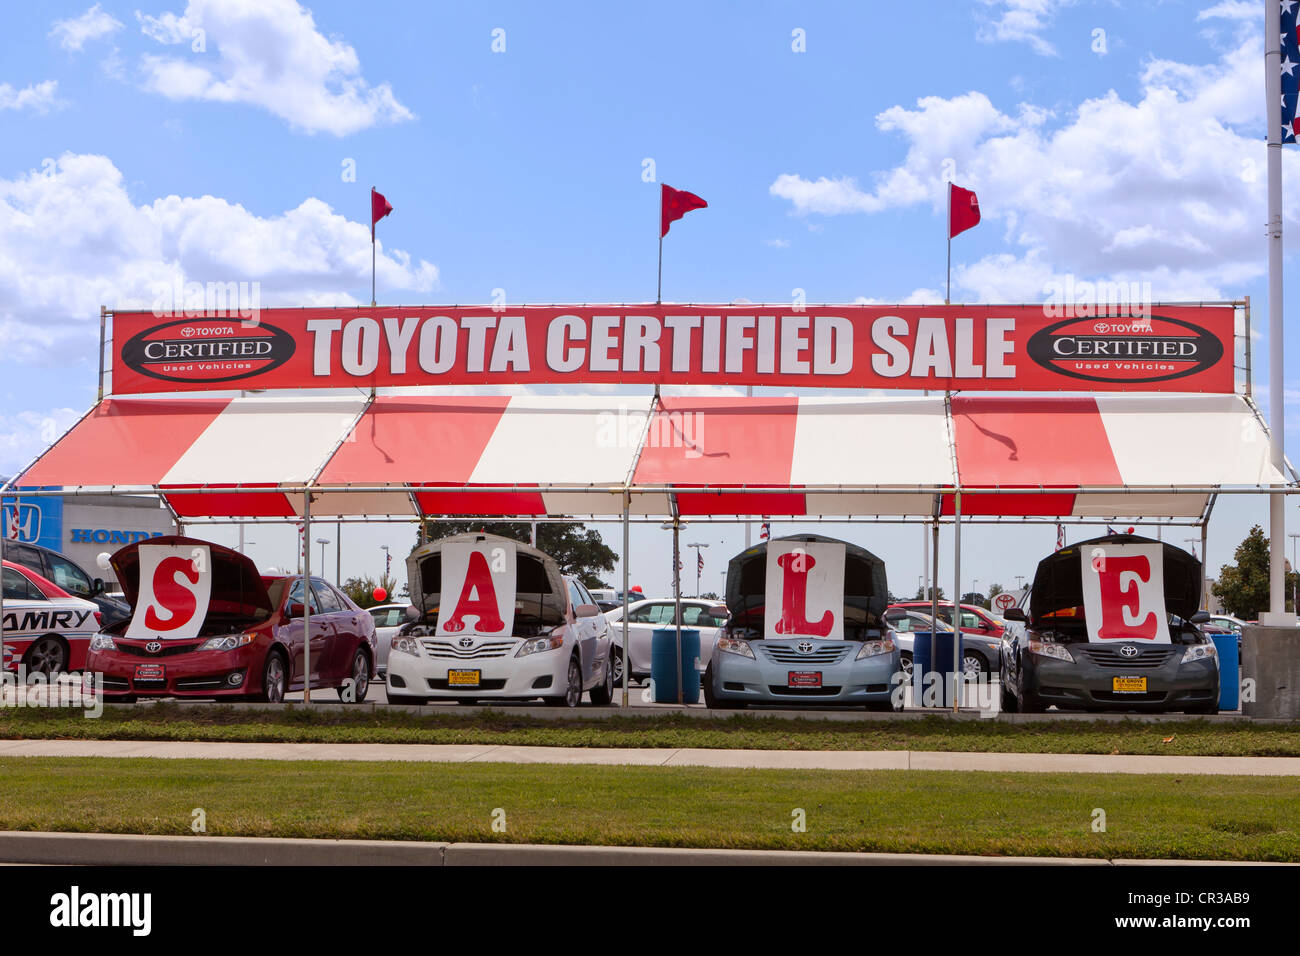 Toyota Certified used car sales lot - California USA Stock Photo ...